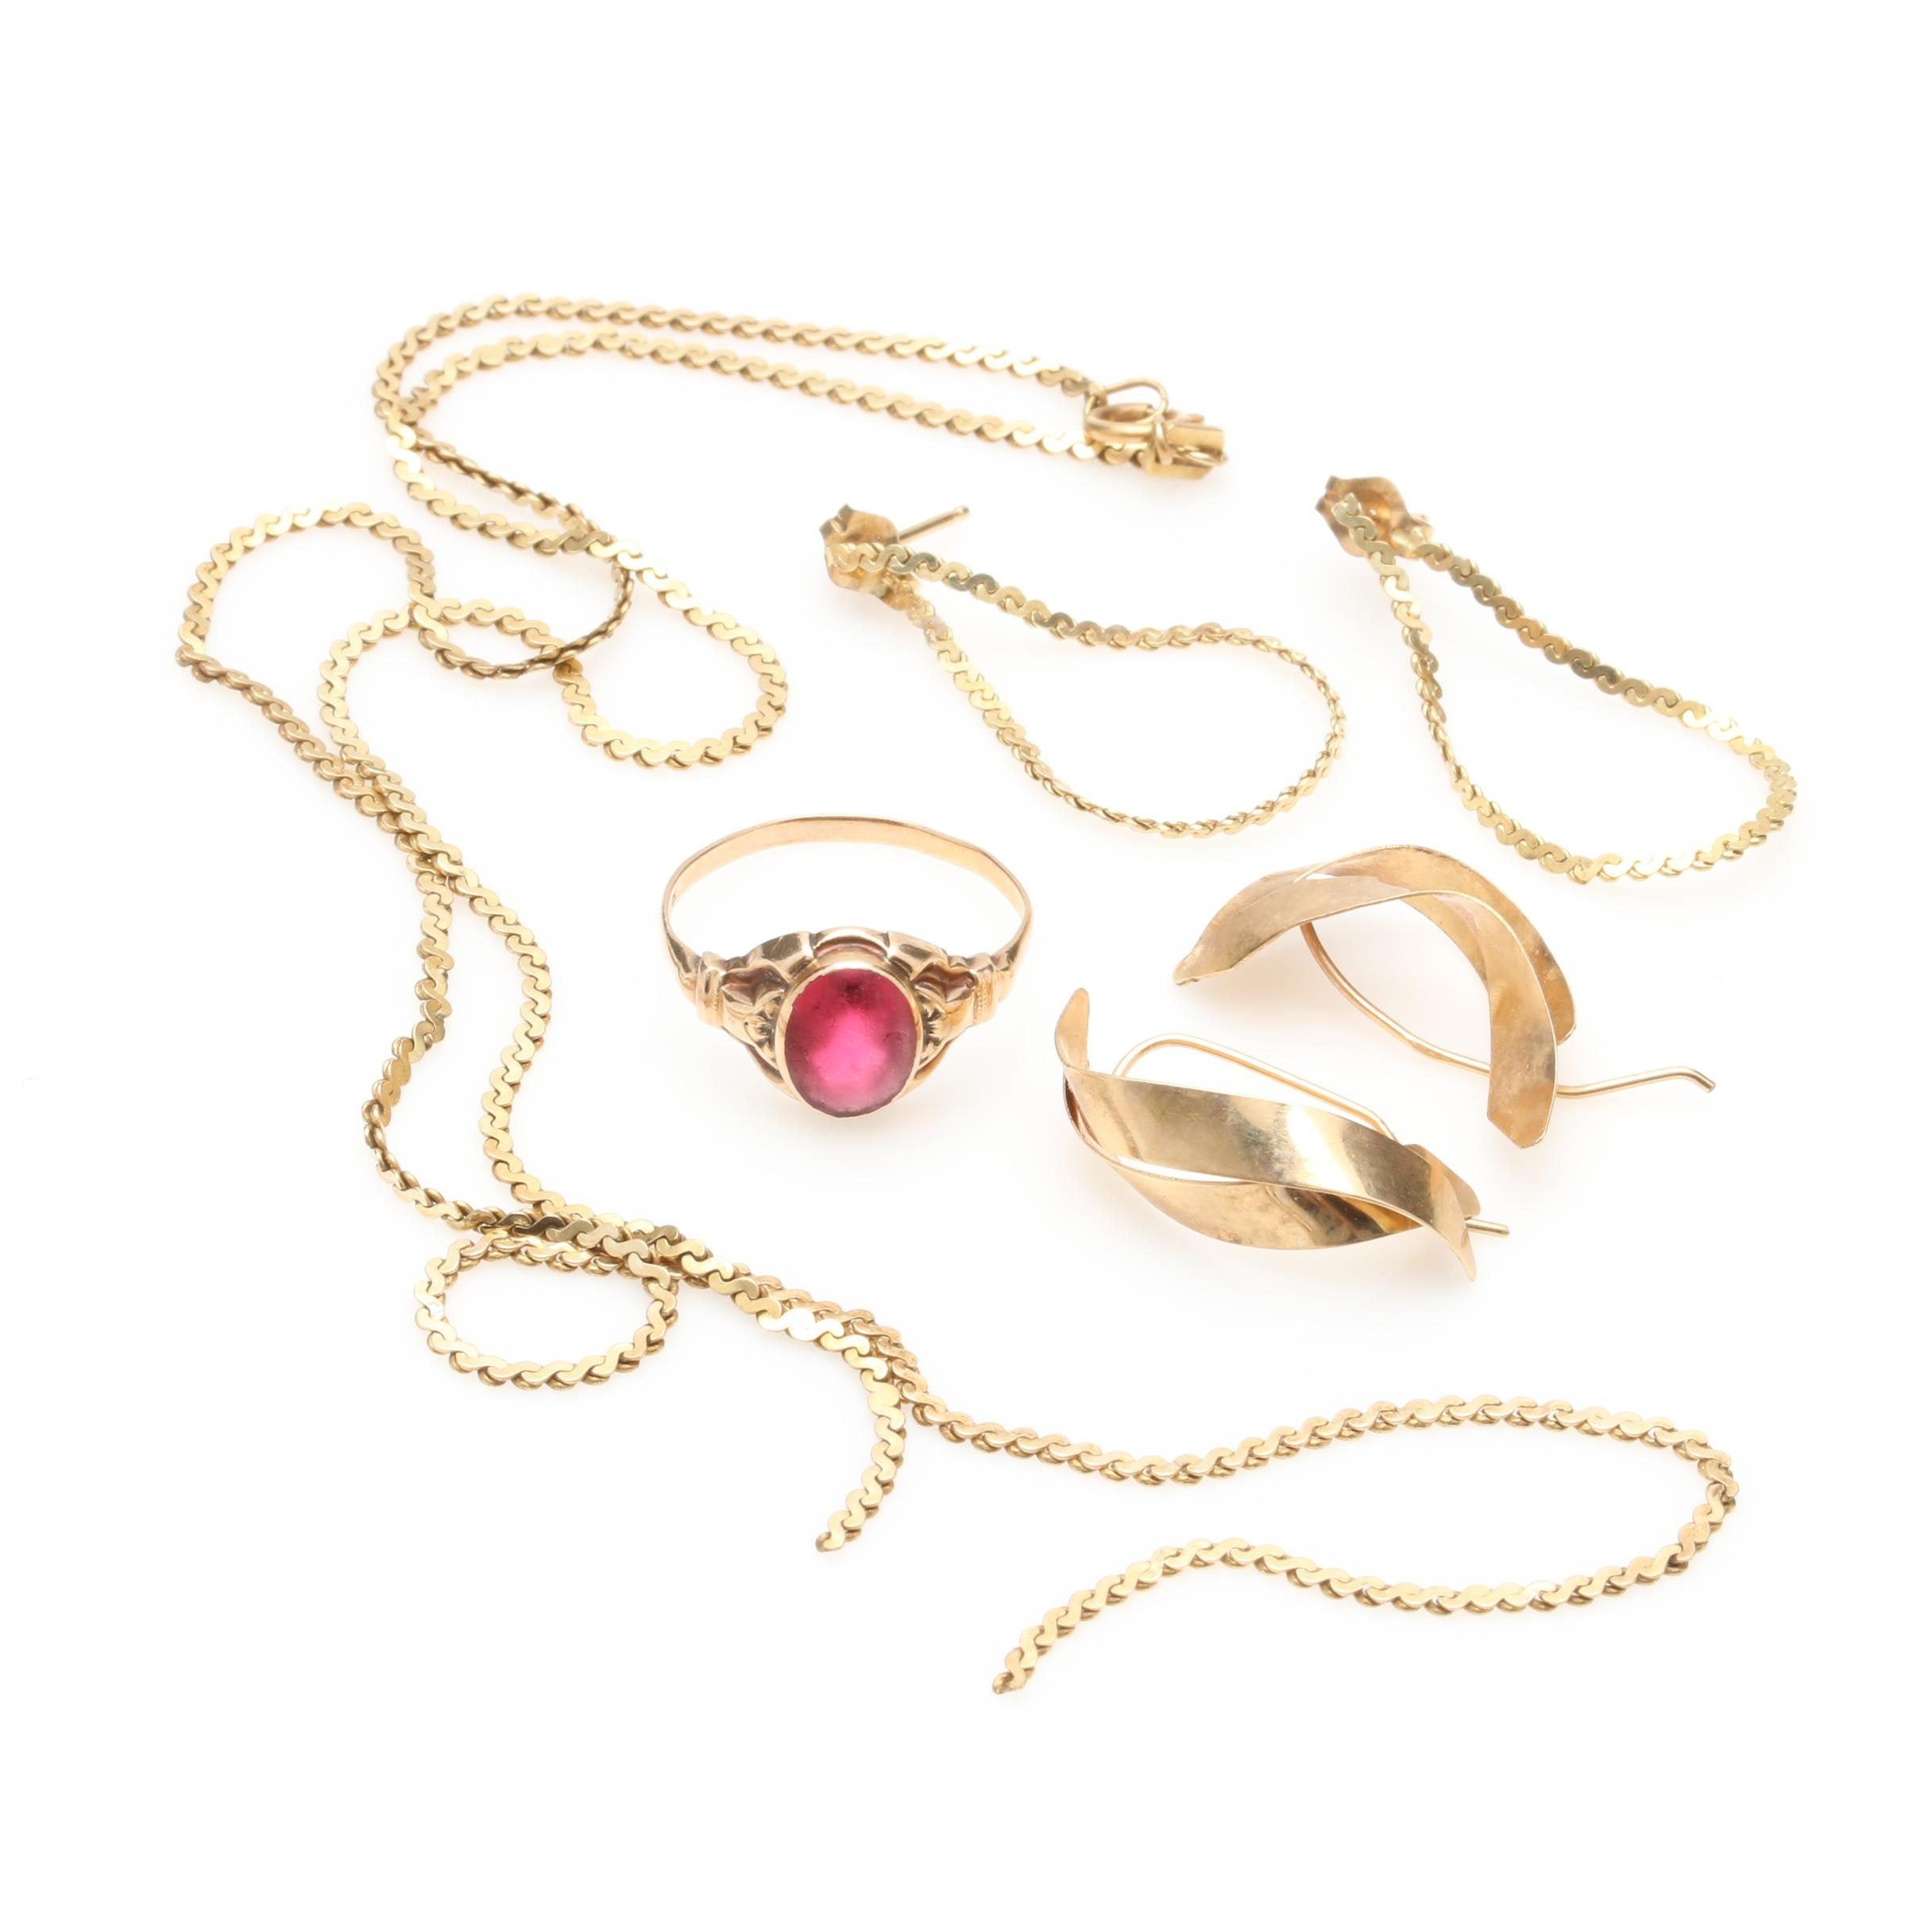 10K and 14K Yellow Gold Scrap Jewelry Including Glass Accent